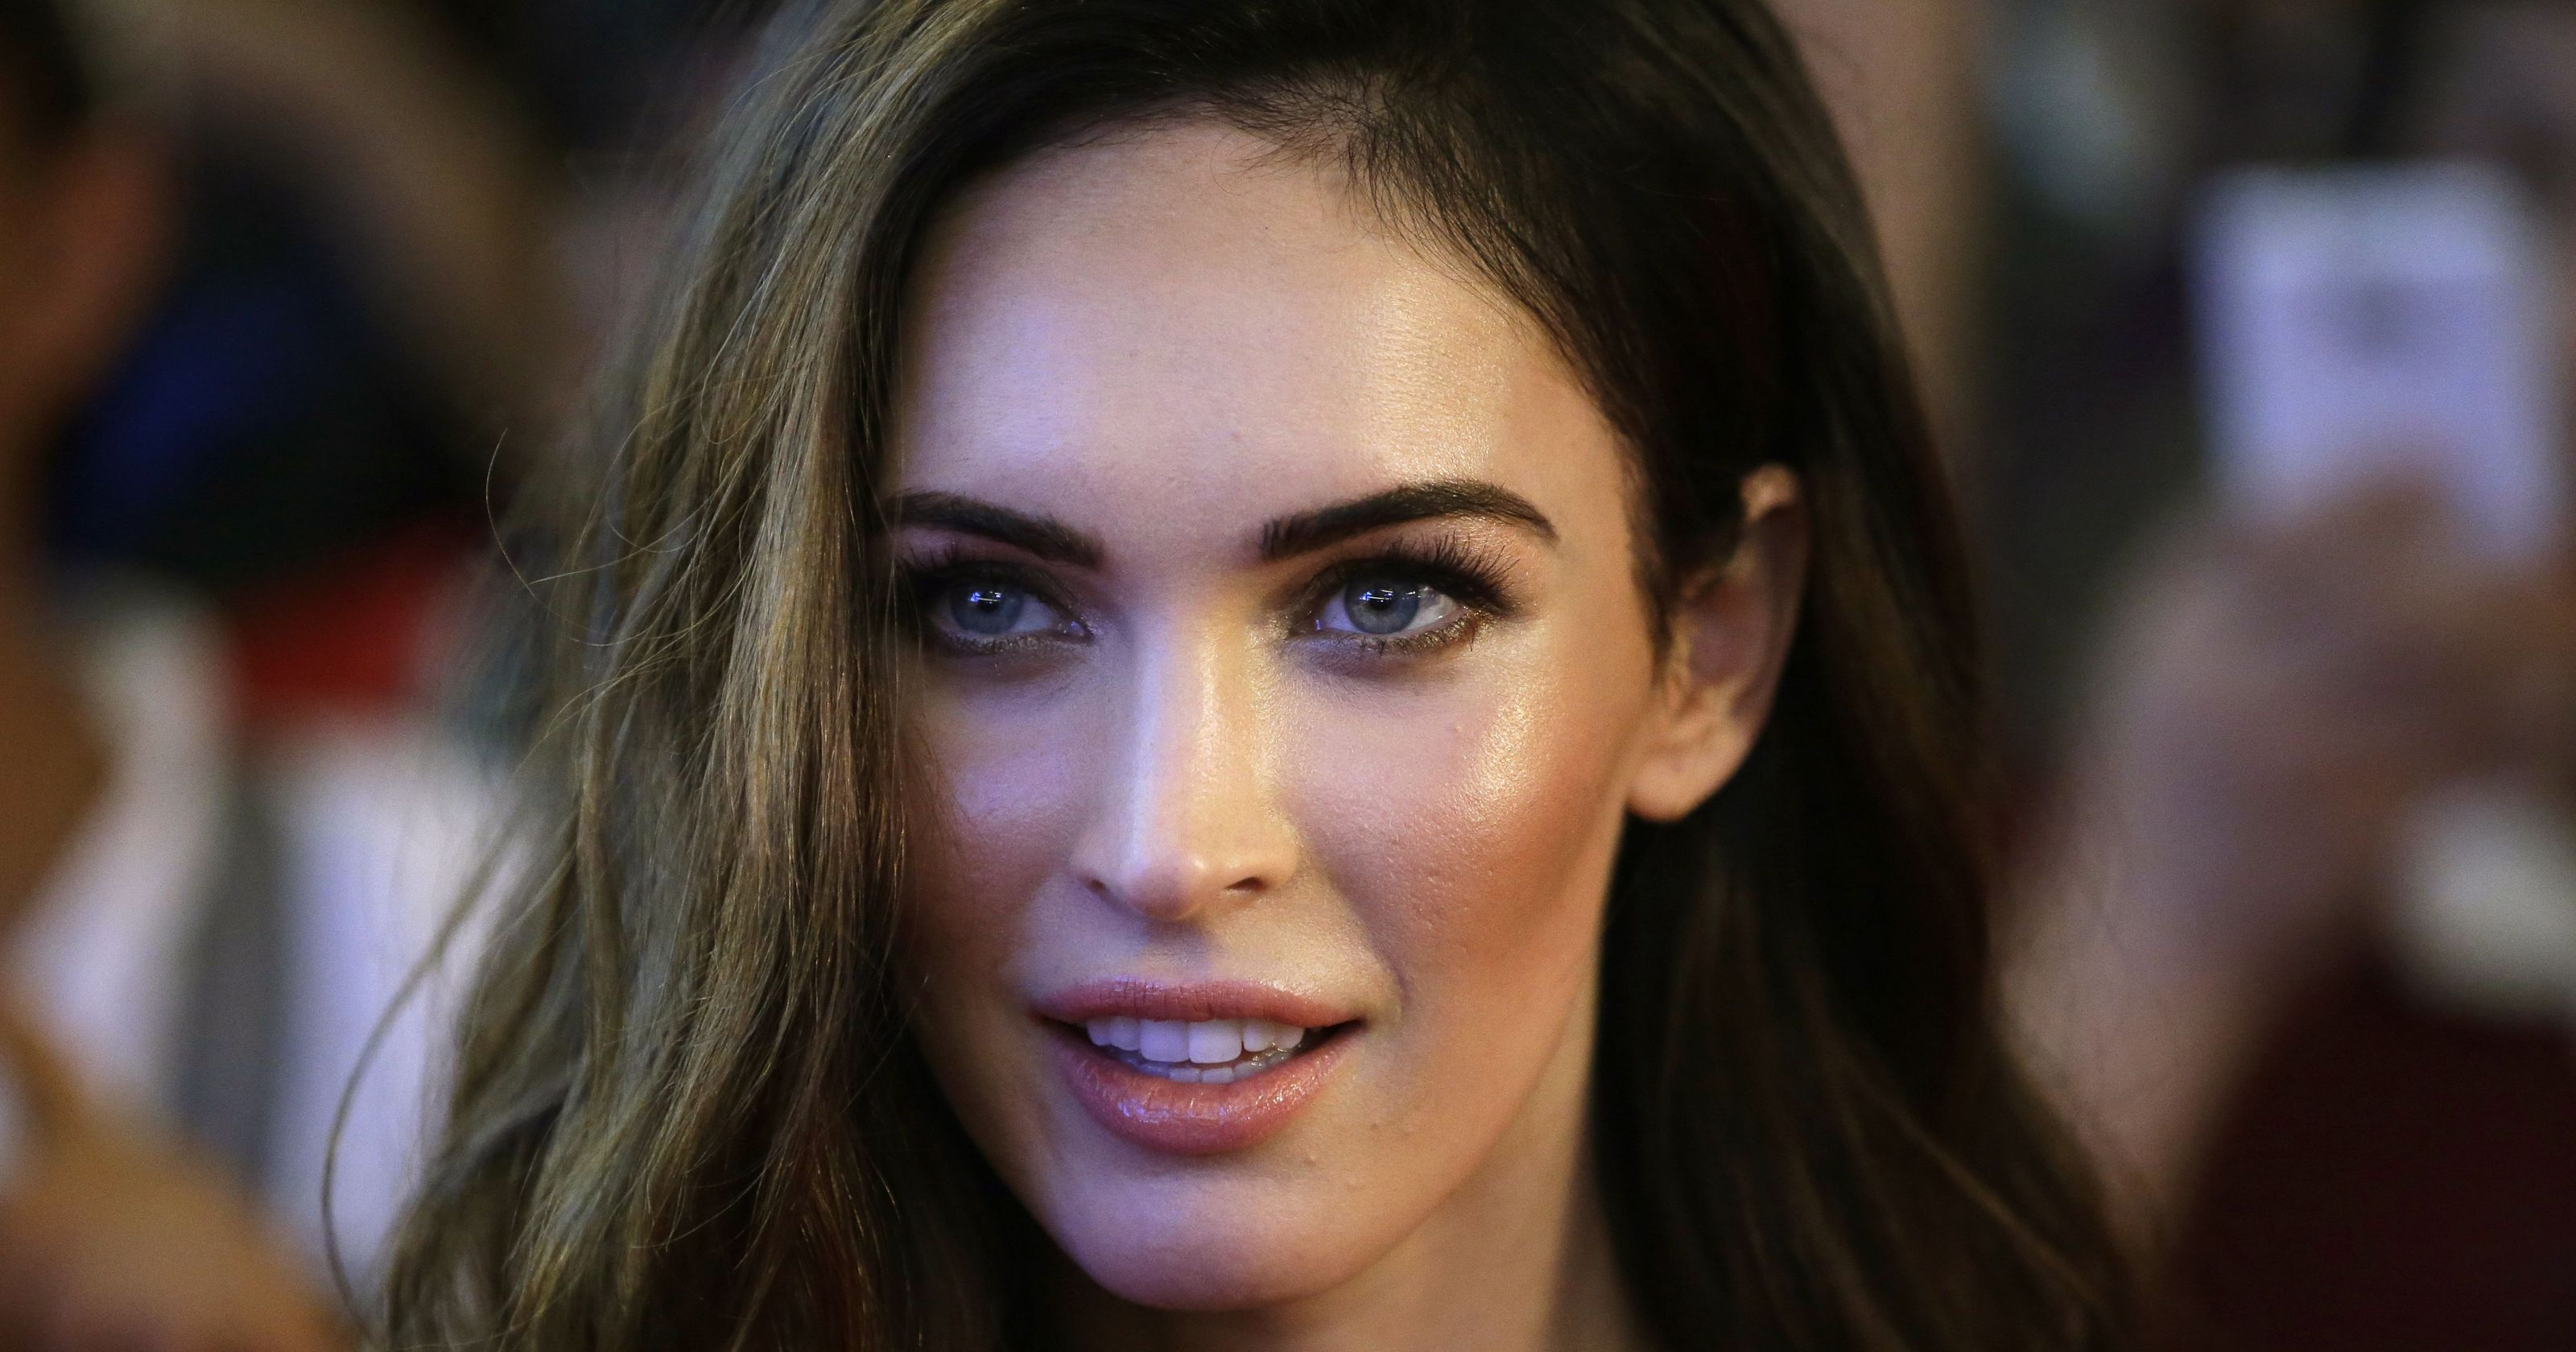 megan fox most hated women in hollywood